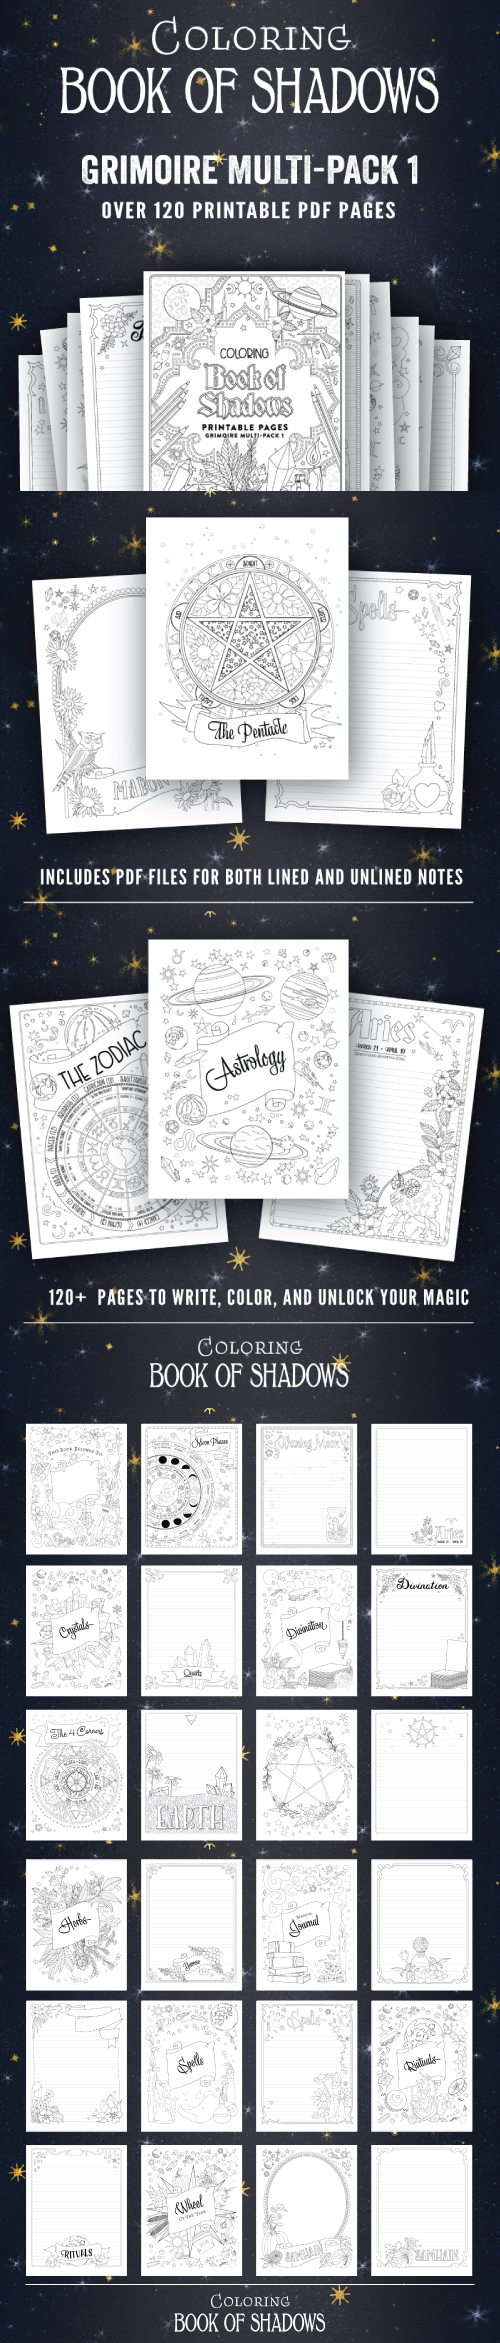 graphic relating to Printable Book of Shadows called Printable Internet pages for your E book of Shadows - Coloring E-book of